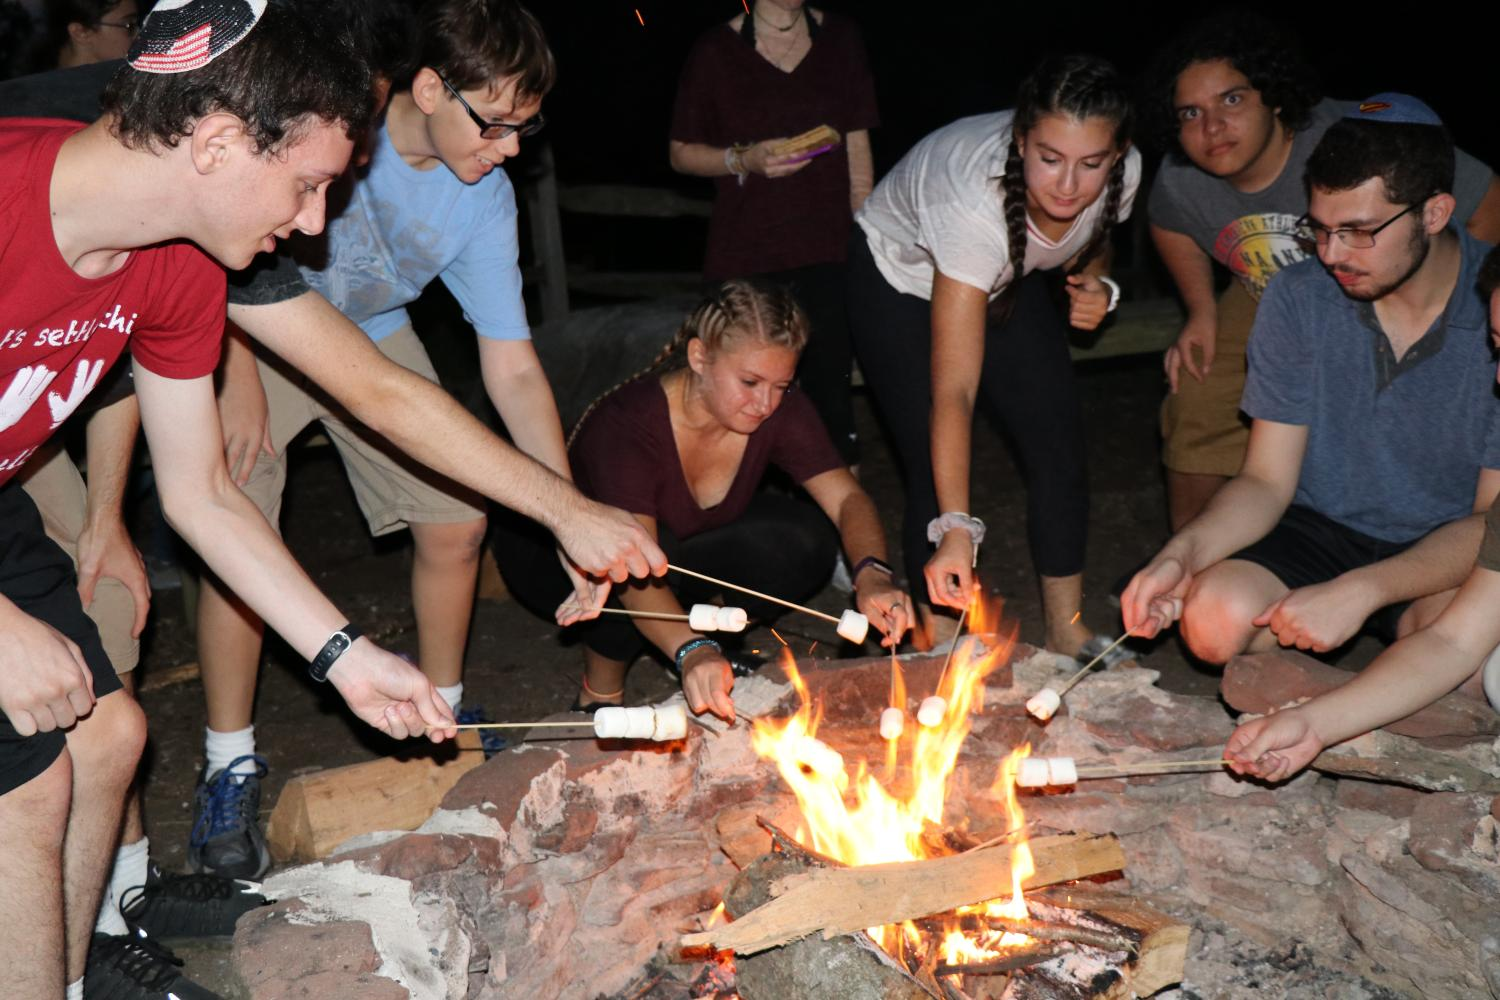 Senior gather around the campfire to roast marshmallows, as part of the barbecue social that took place Sunday night. The seniors headed inside afterwards for a student-led